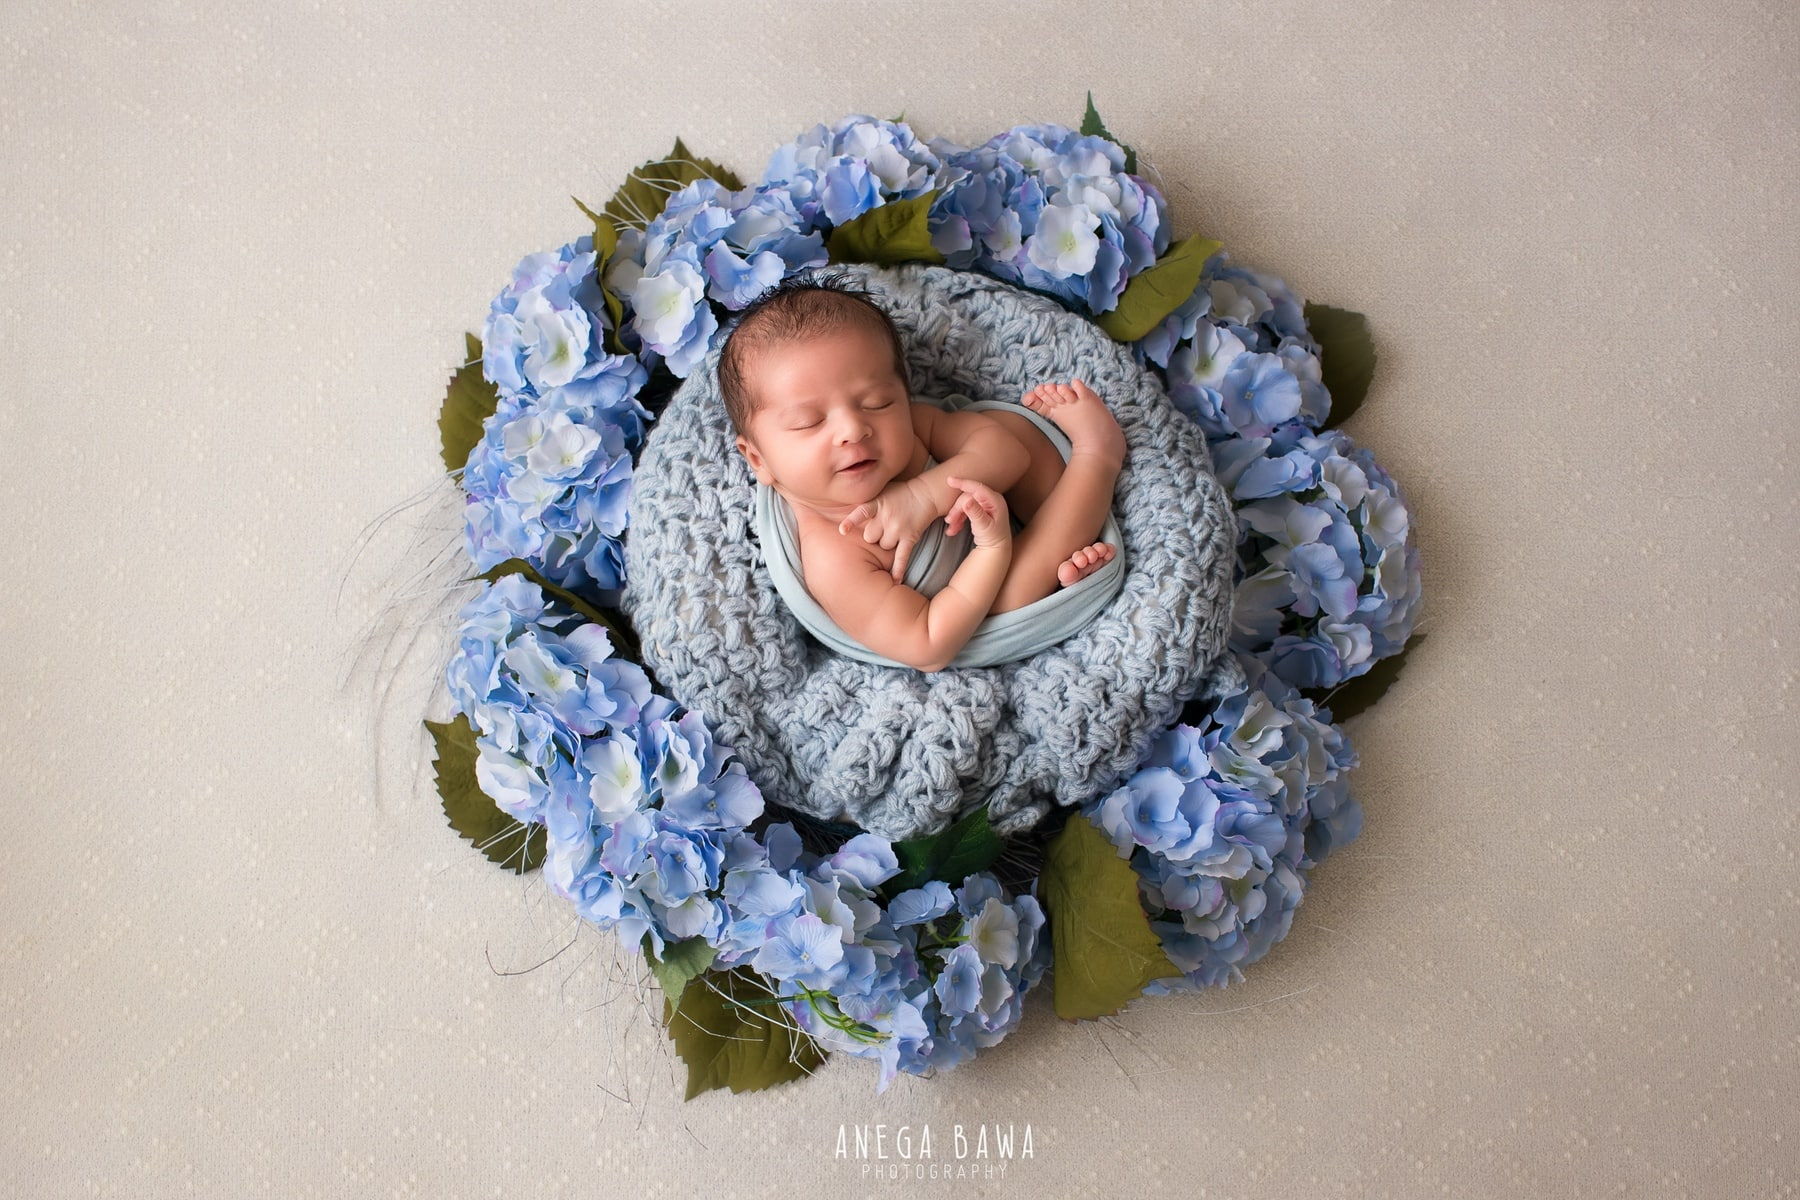 white floral newborn photography delhi 10 days baby boy photoshoot gurgaon anega bawa